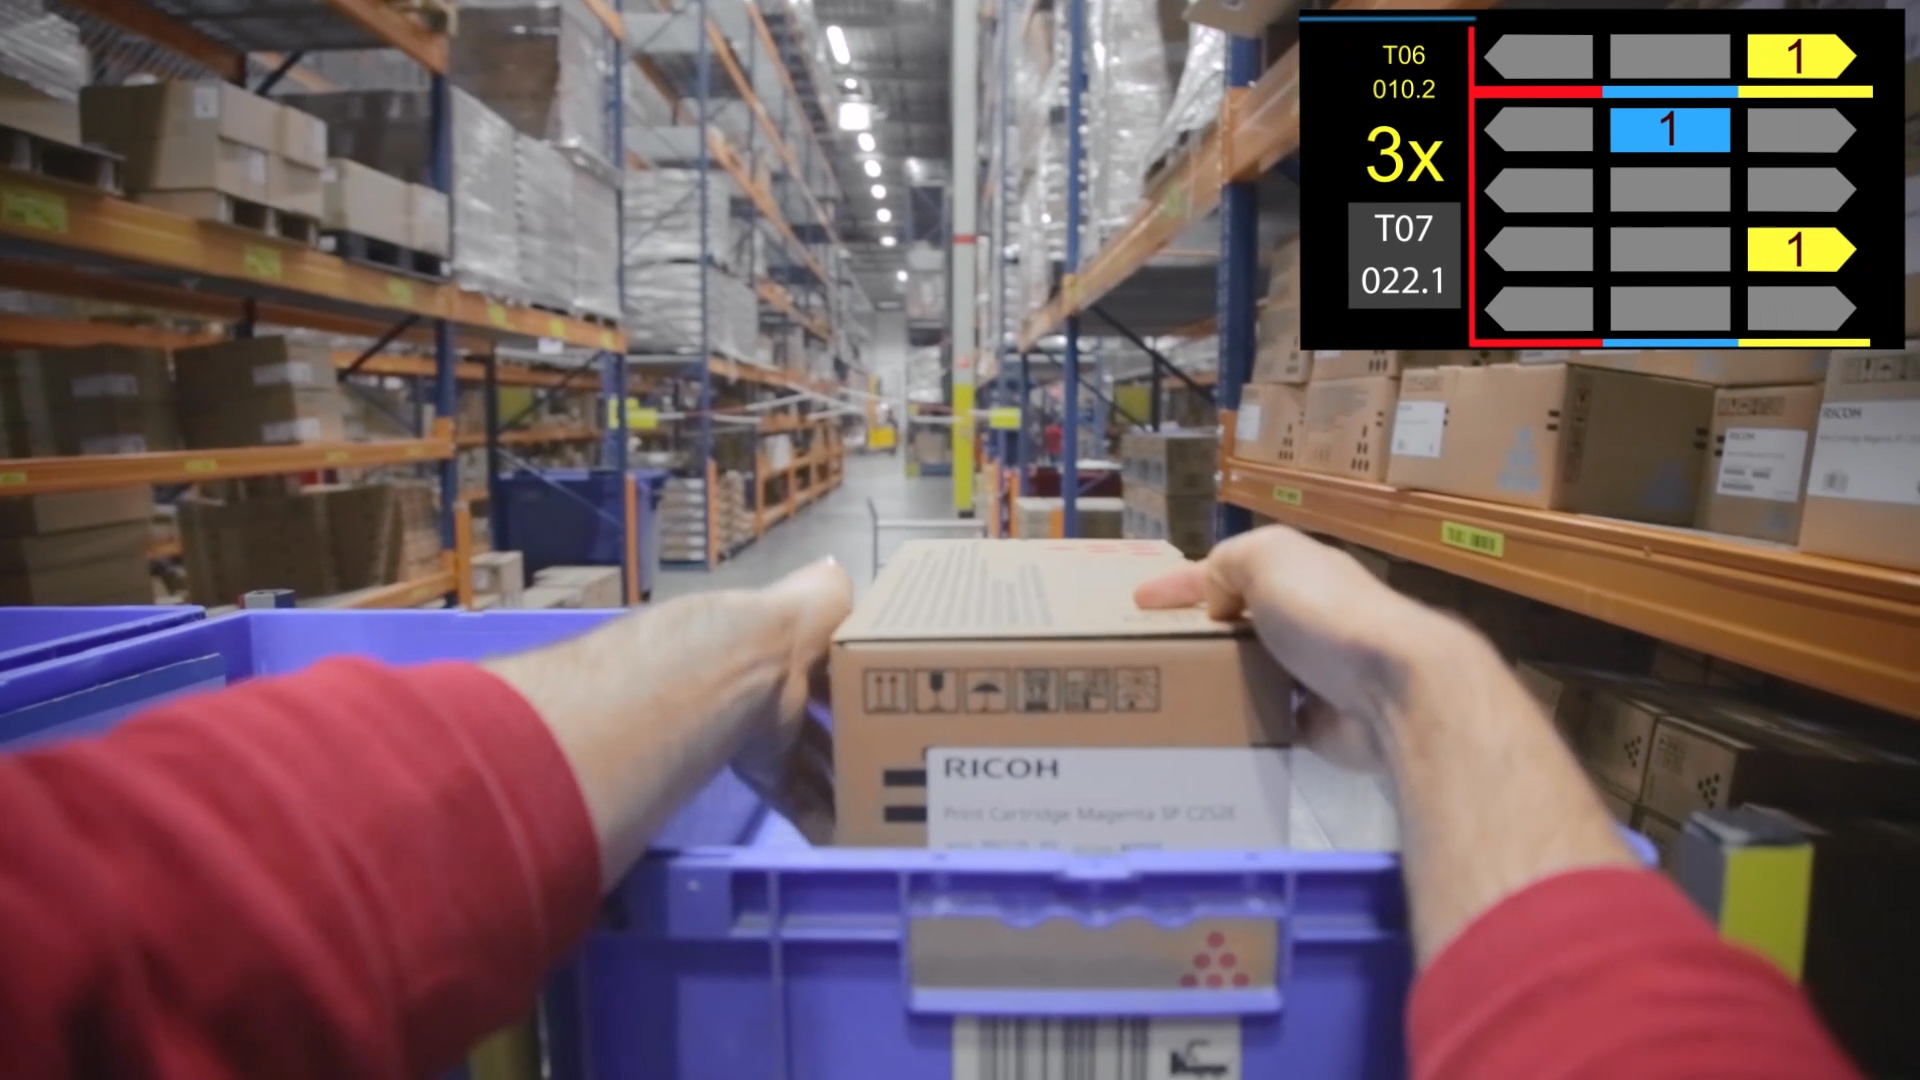 Dhl air express airway bill instructions - Dhl Supply Chain Eyes New Augmented Reality As It Expands Use Of Smart Glasses The Loadstar